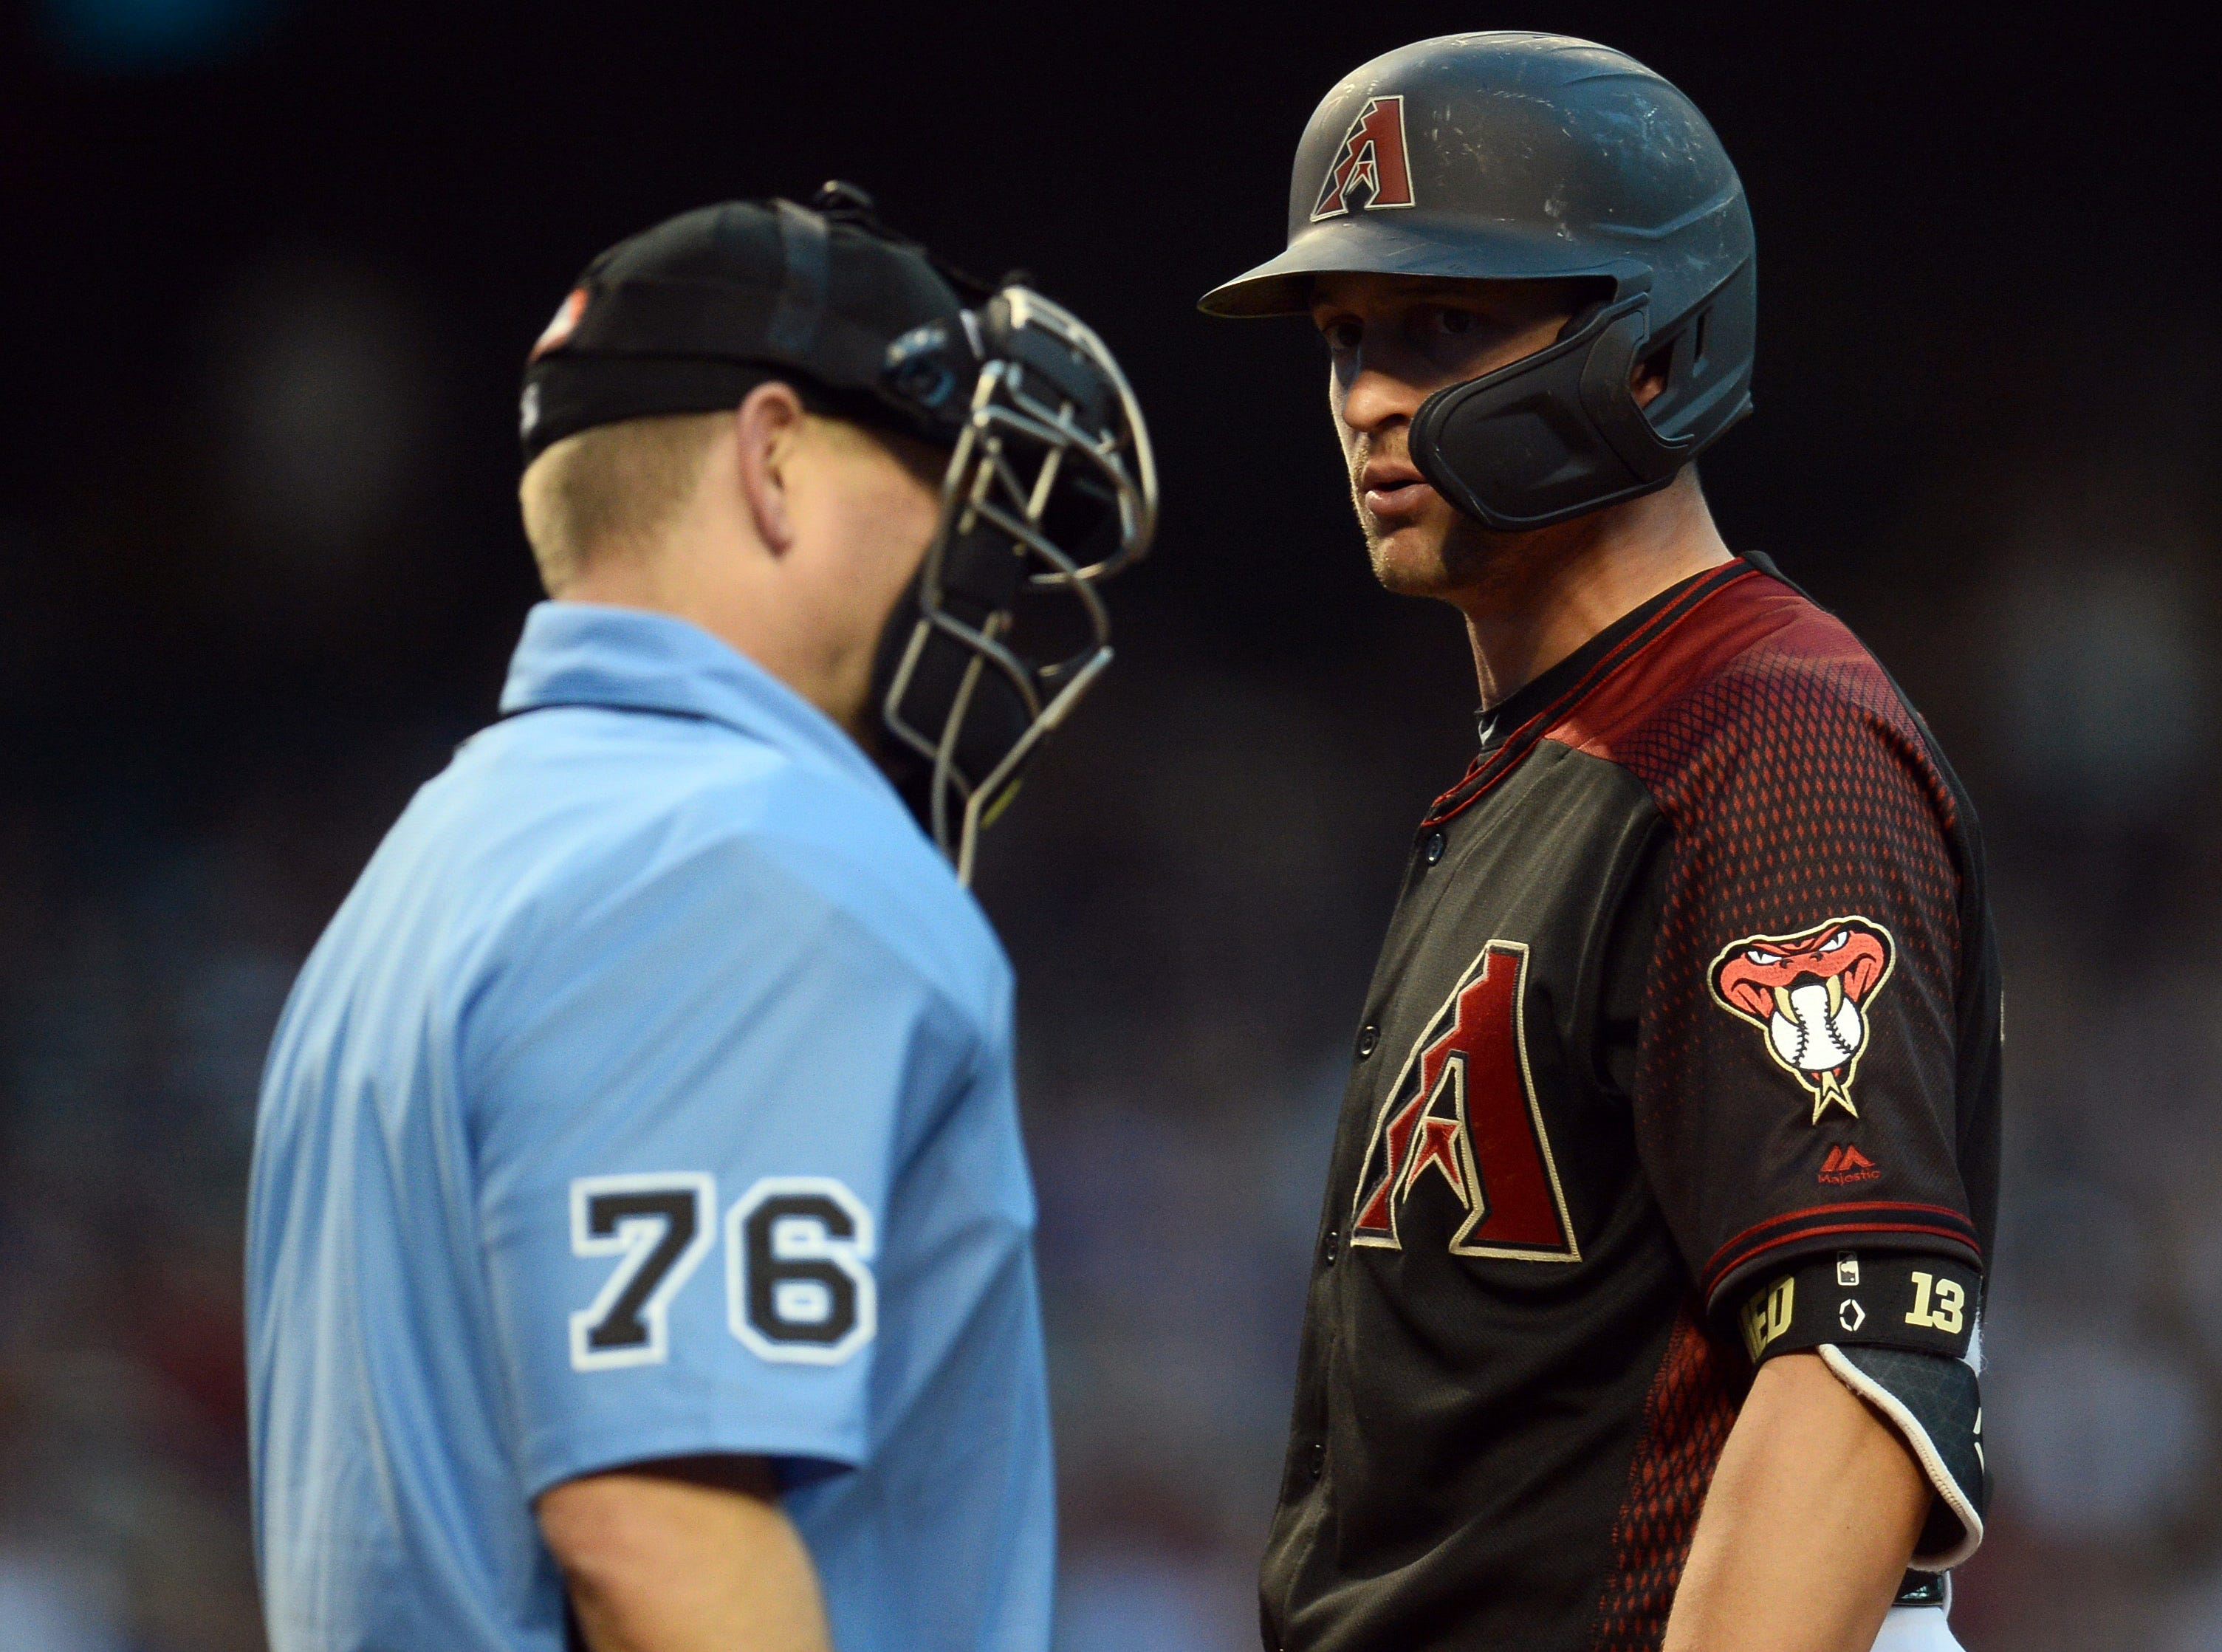 Apr 13, 2019; Phoenix, AZ, USA; Arizona Diamondbacks shortstop Nick Ahmed (13) has words with home plate umpire Mike Muchlinski (76) after being called out on strikes during the fourth inning against the San Diego Padres at Chase Field. Mandatory Credit: Joe Camporeale-USA TODAY Sports